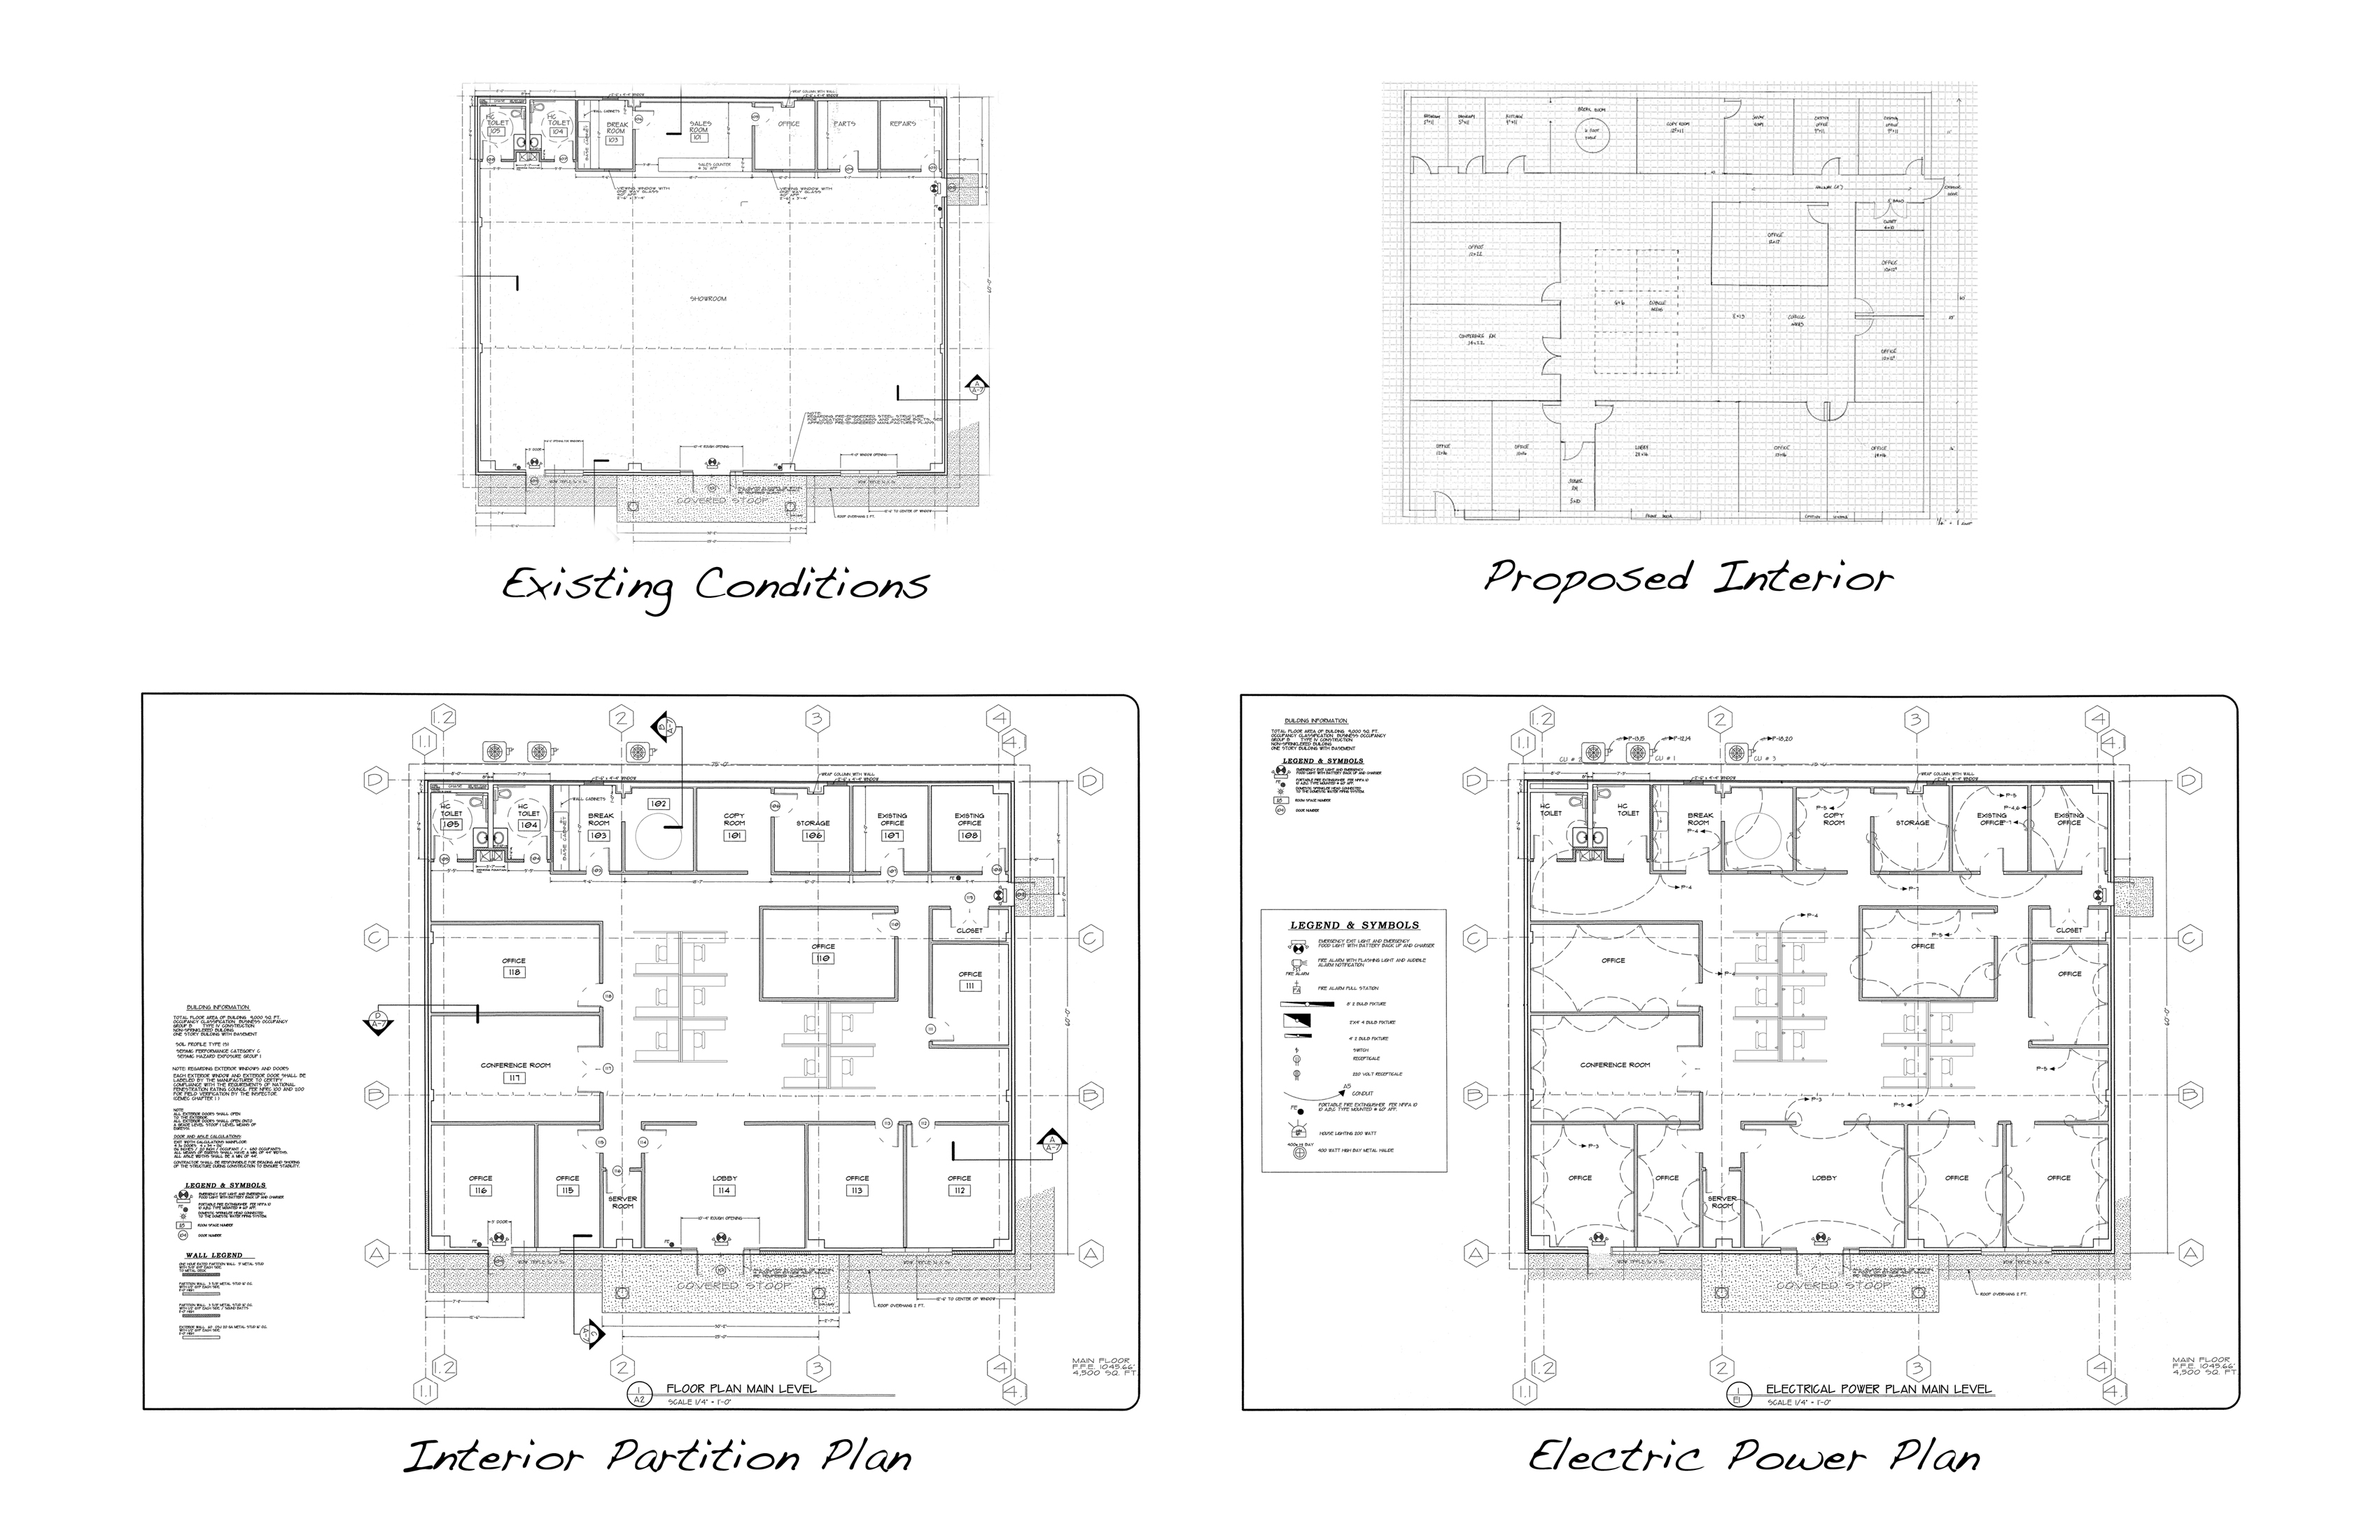 Electrical Plan For Warehouse,Plan.Home Plans Ideas Picture